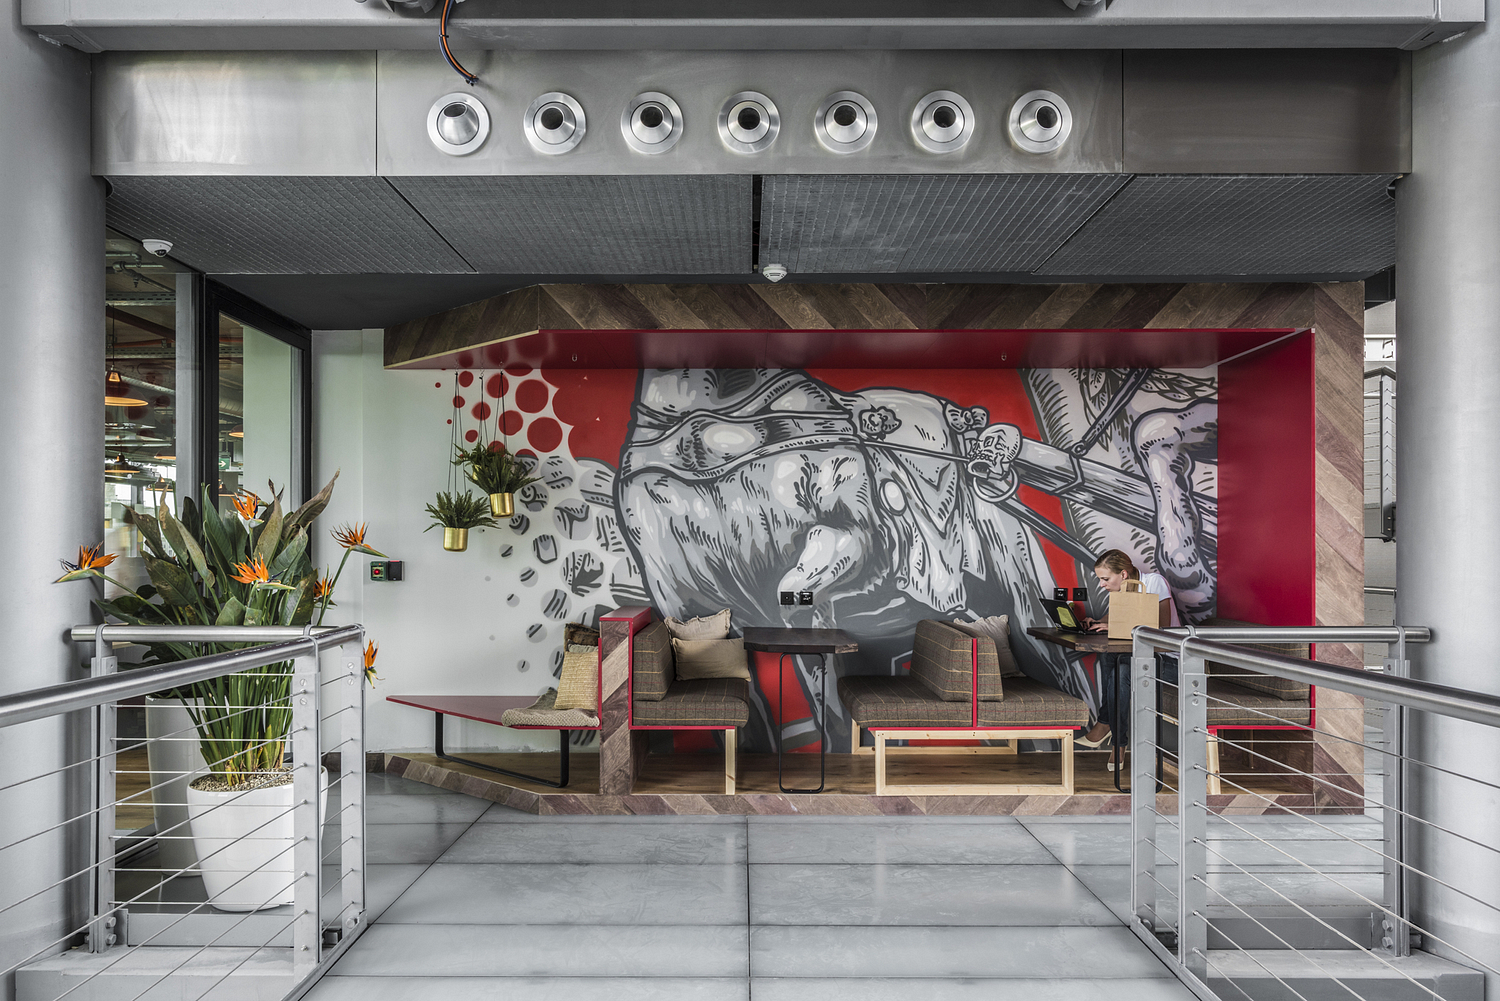 Outdoor office breakout area with graffiti, Berlin